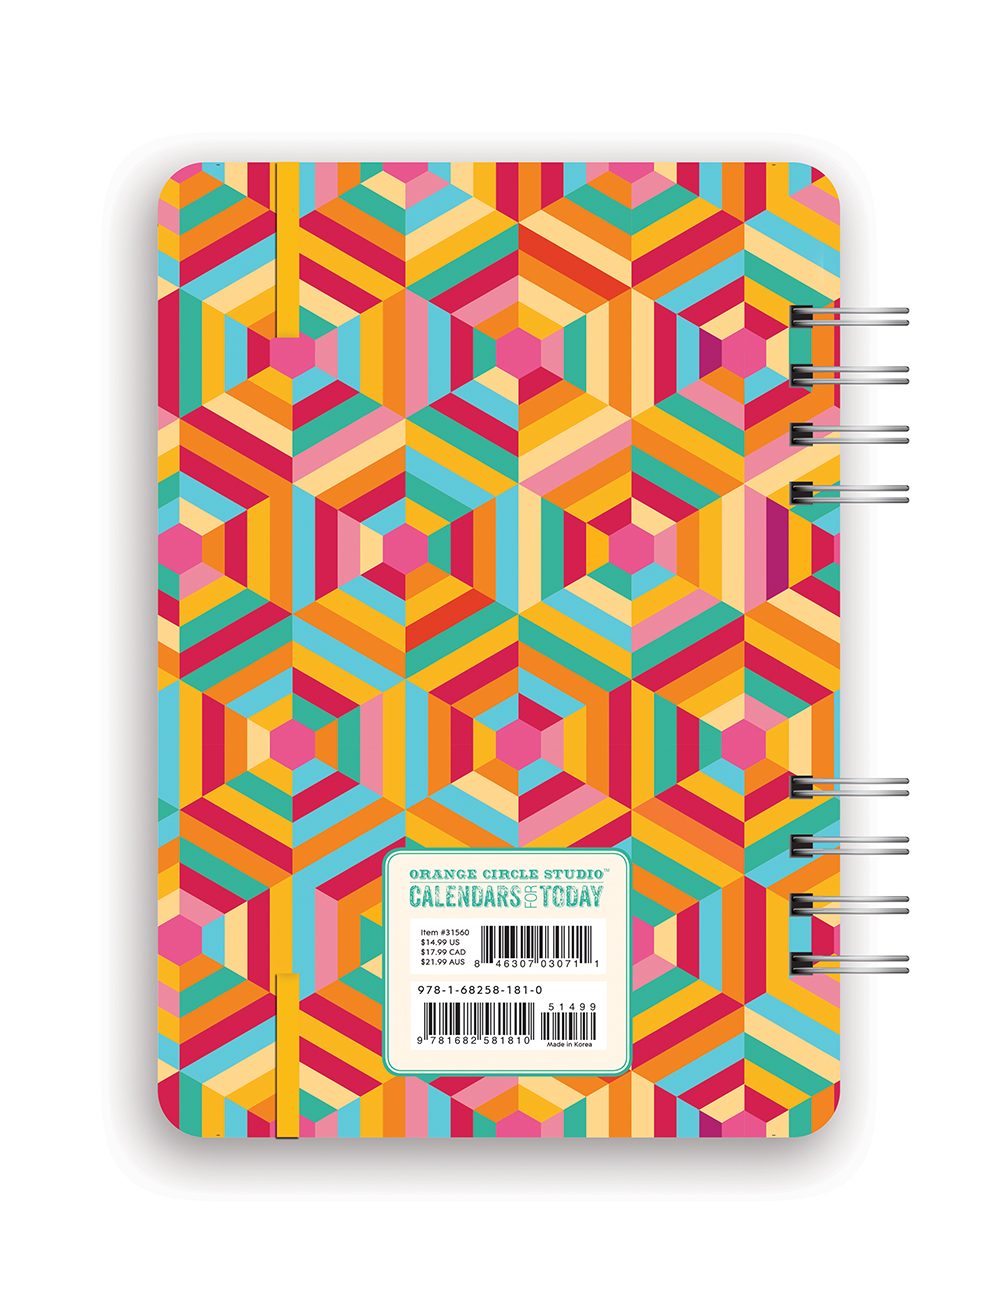 Kaleidoscope Do it All Planner 2018 by Orange Circle Studio back 9781682581810